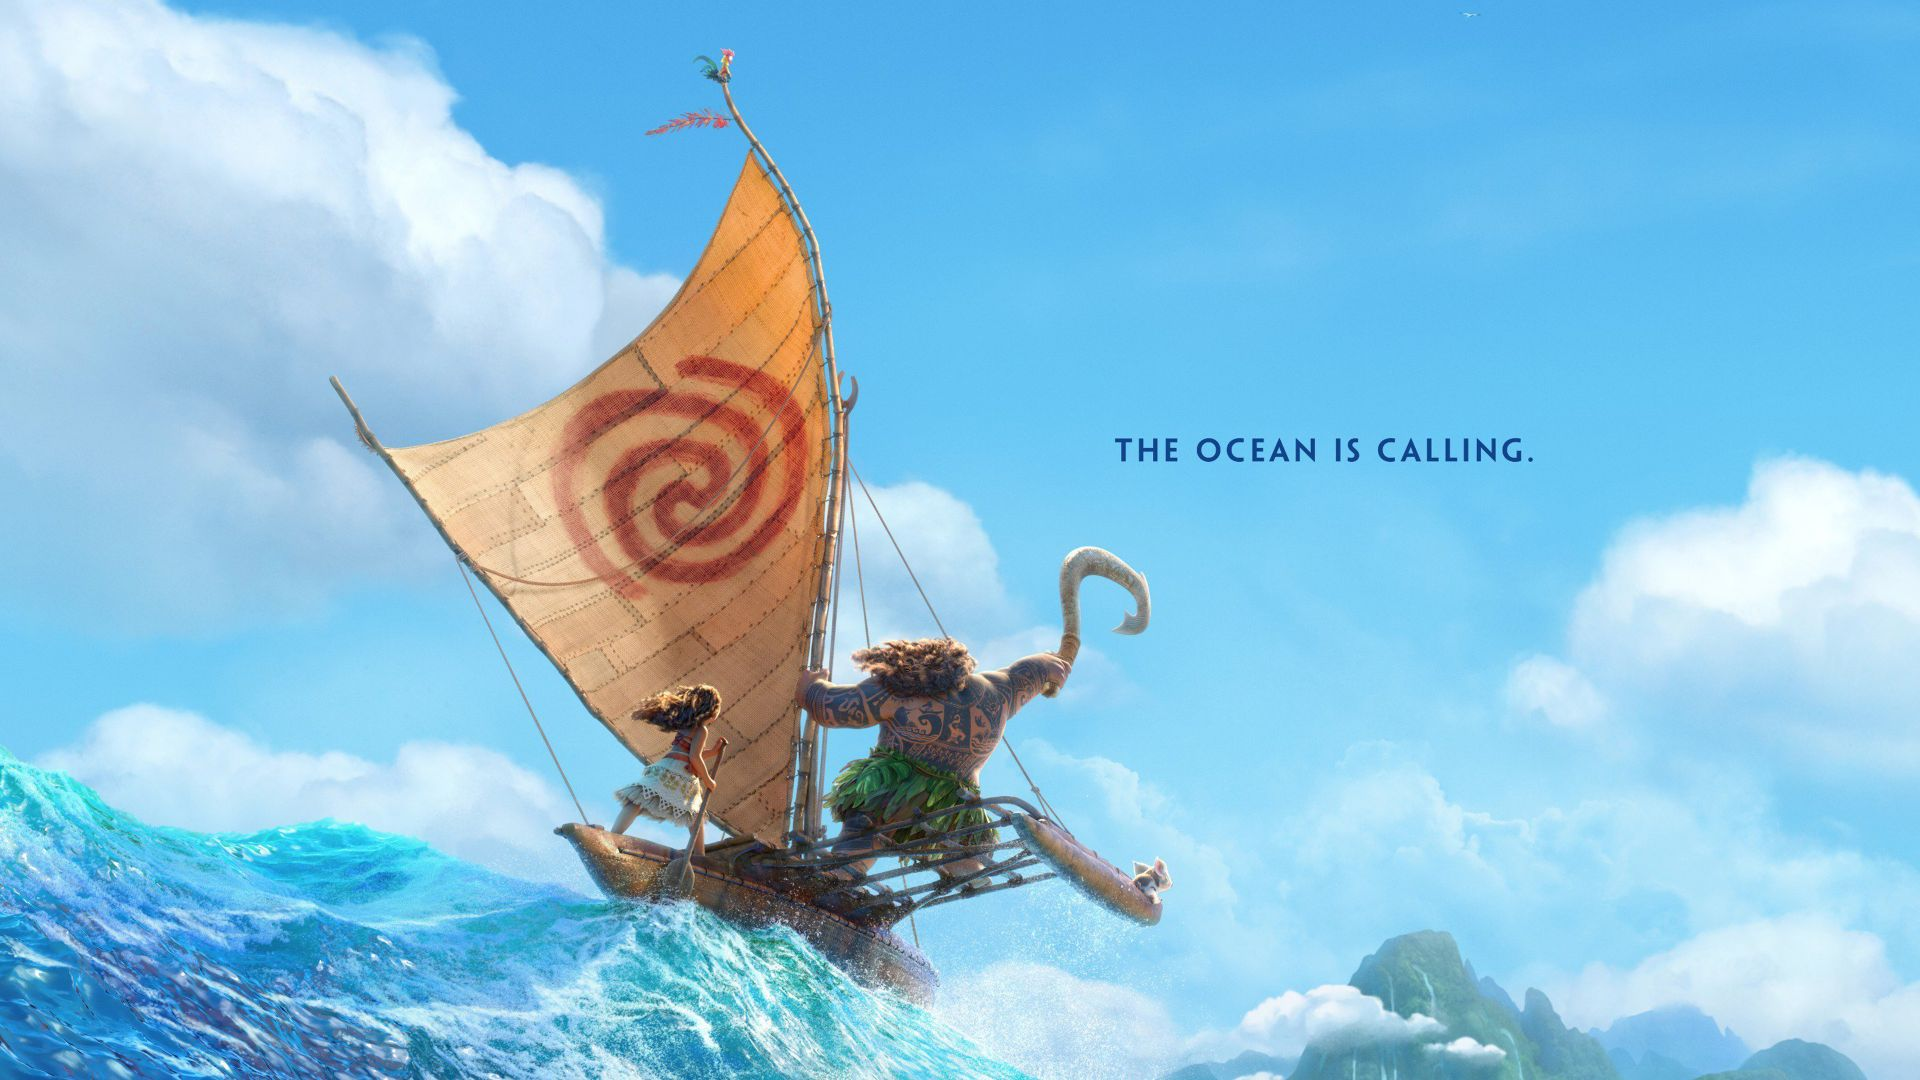 Moana, Maui, ocean, best animation movies of 2016 (horizontal)